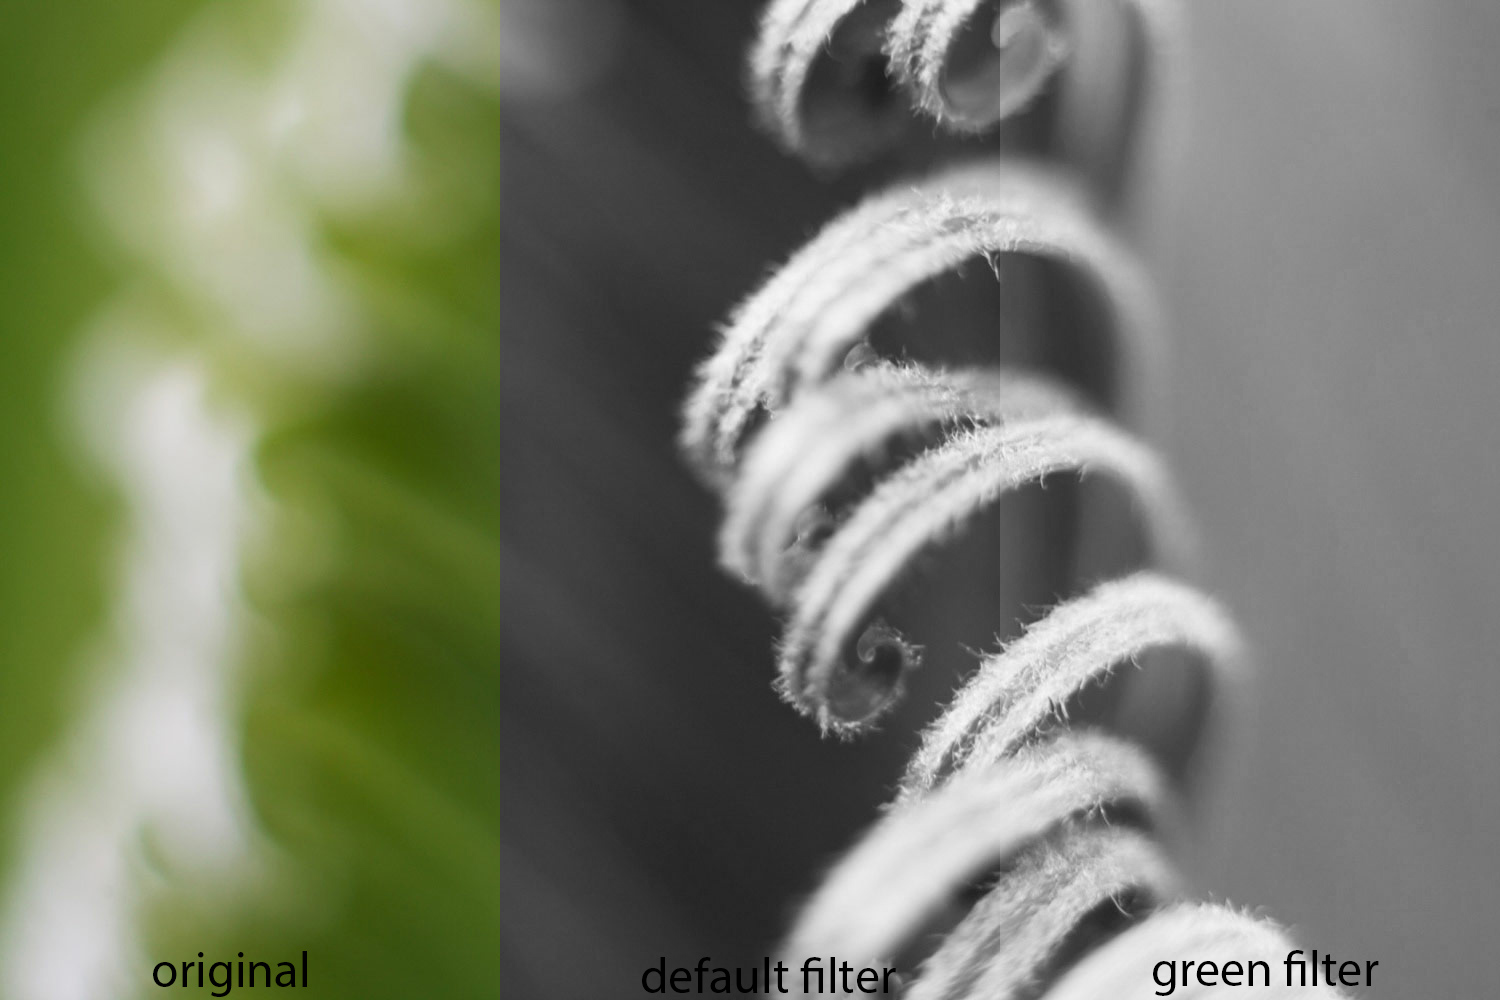 In black and white photography green filters are mainly used for photographing plants separating green foliage from brightly colored flowers